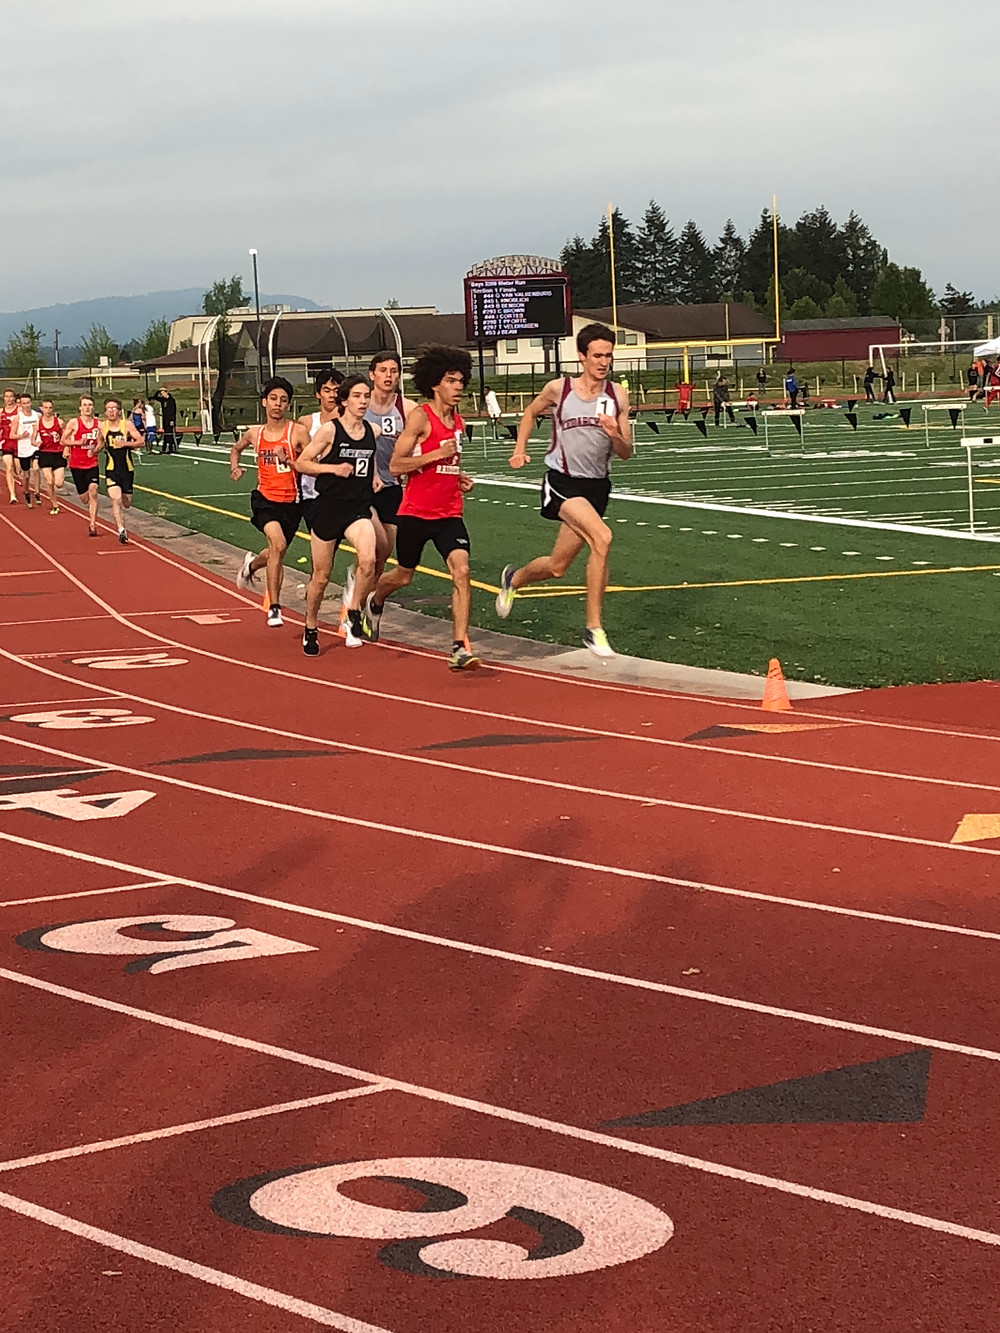 Cade Brown (red) won the 2A Boys District 3200 race running 9:18.29